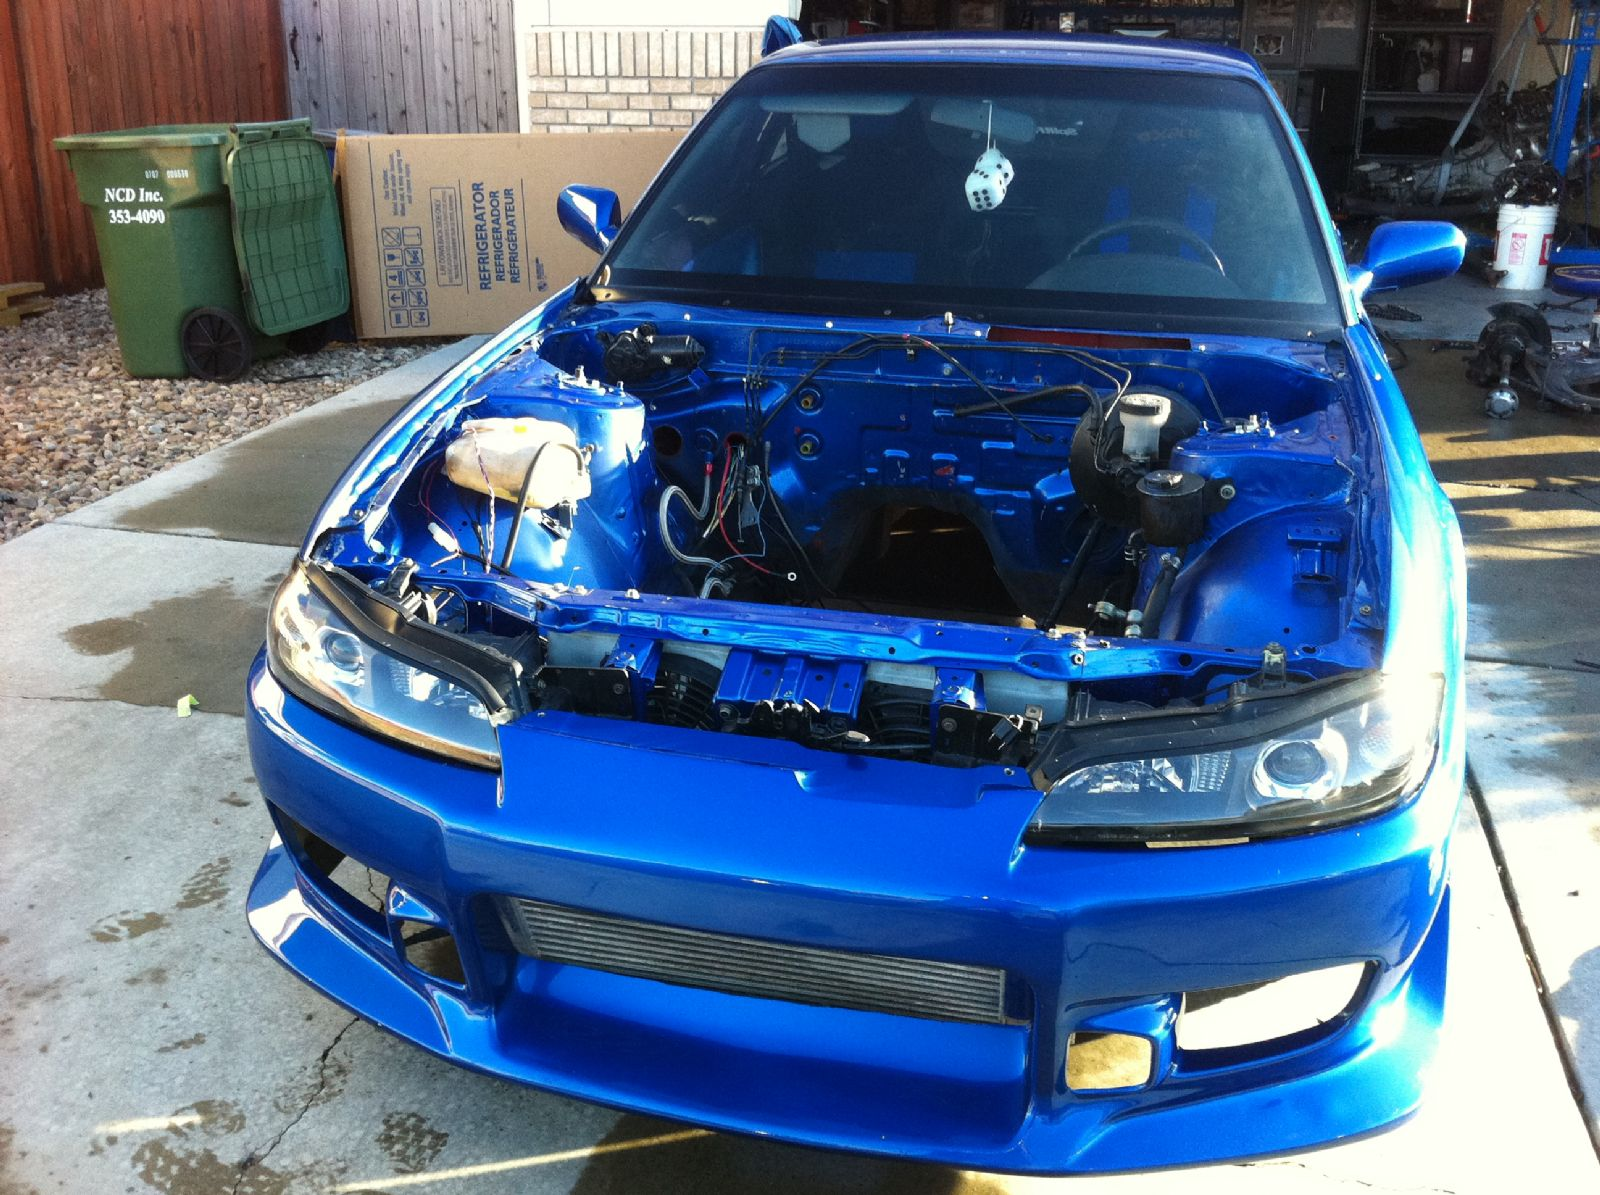 1989 Nissan S15/13 Silivia [Silvia] Project Car For Sale | Greeley ...